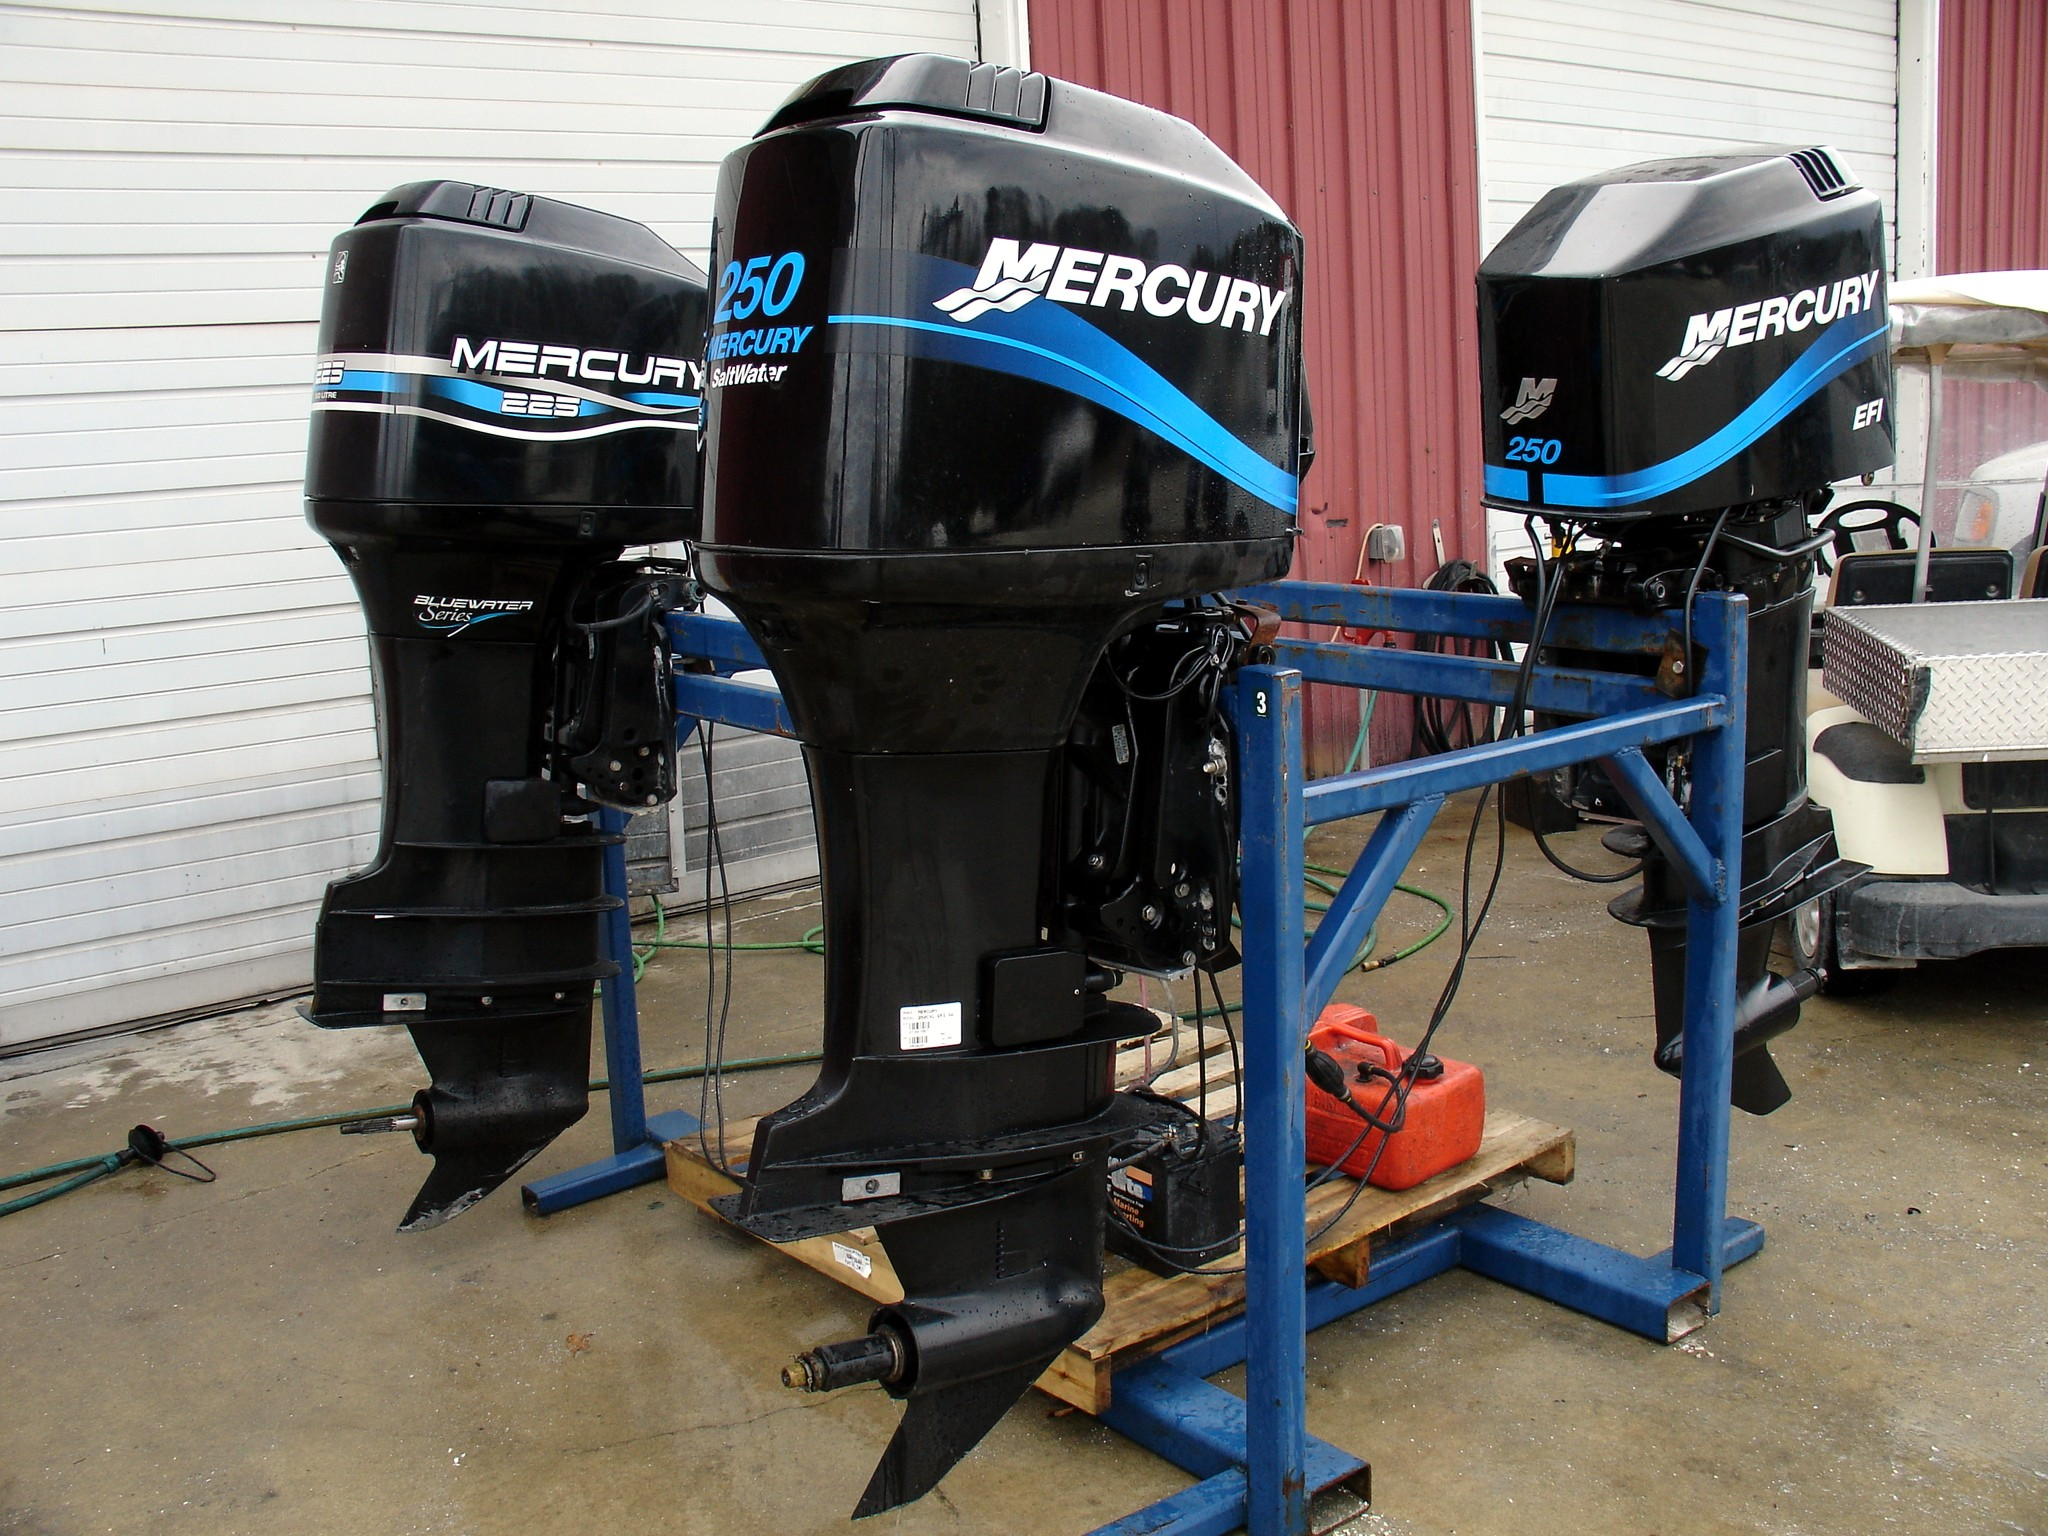 Used 2001 mercury marine 250xl 250hp efi saltwater for Used 200 hp mercury outboard motors for sale